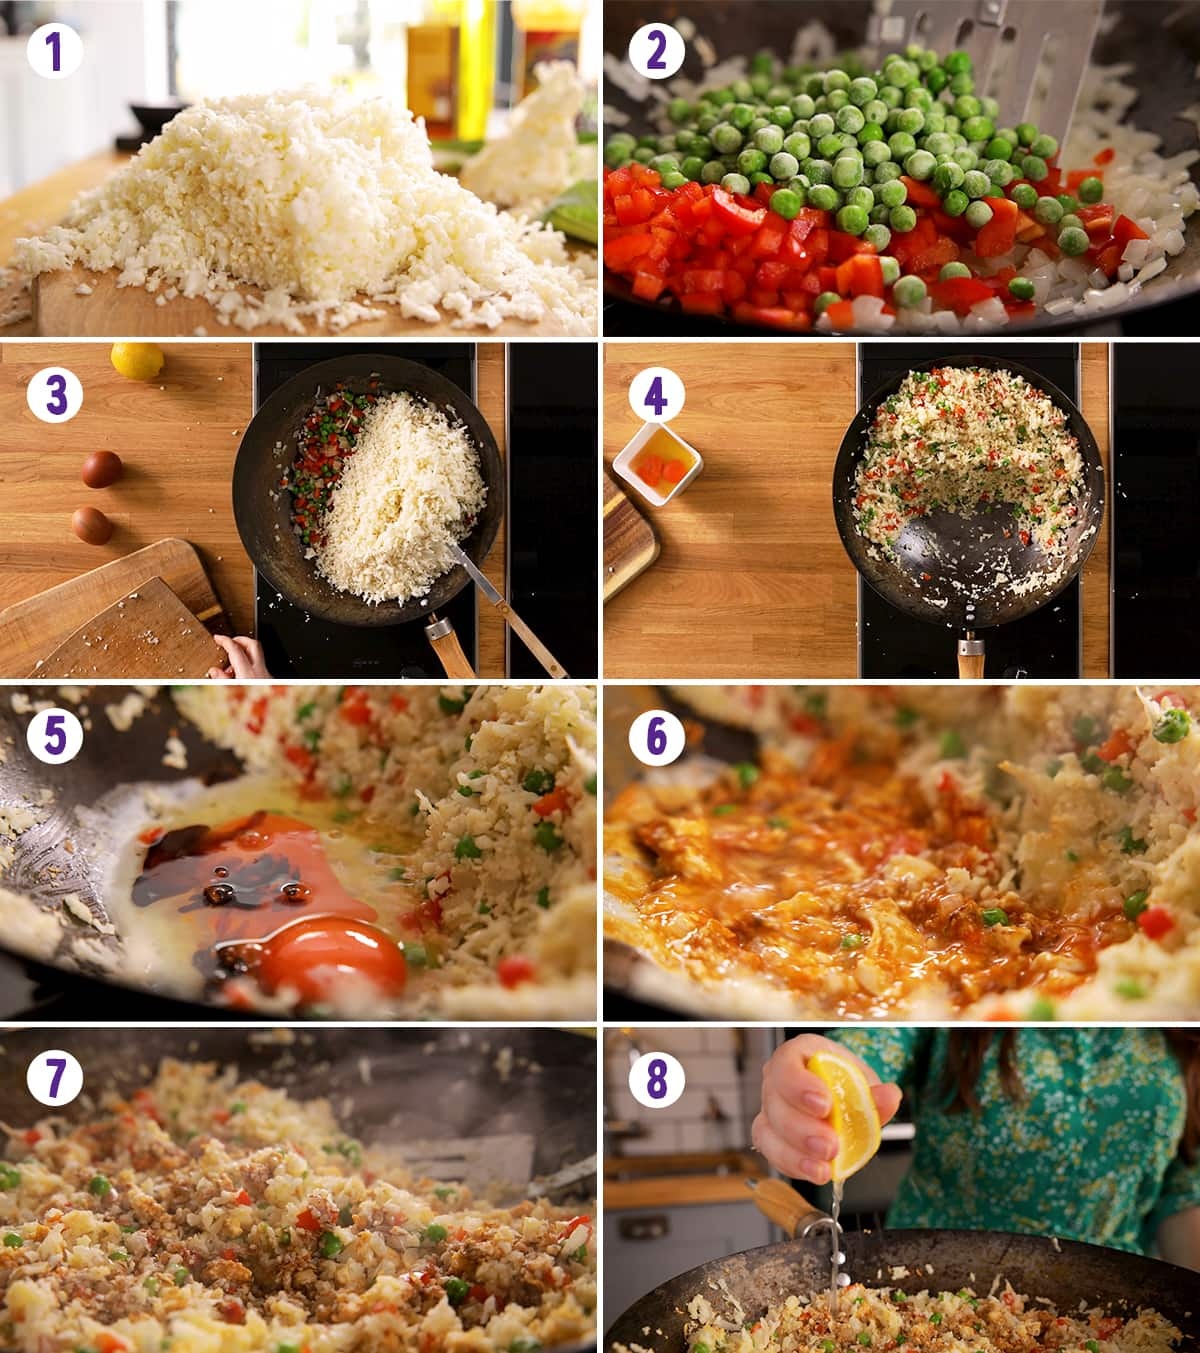 8 image collage showing how to make cauliflower fried rice